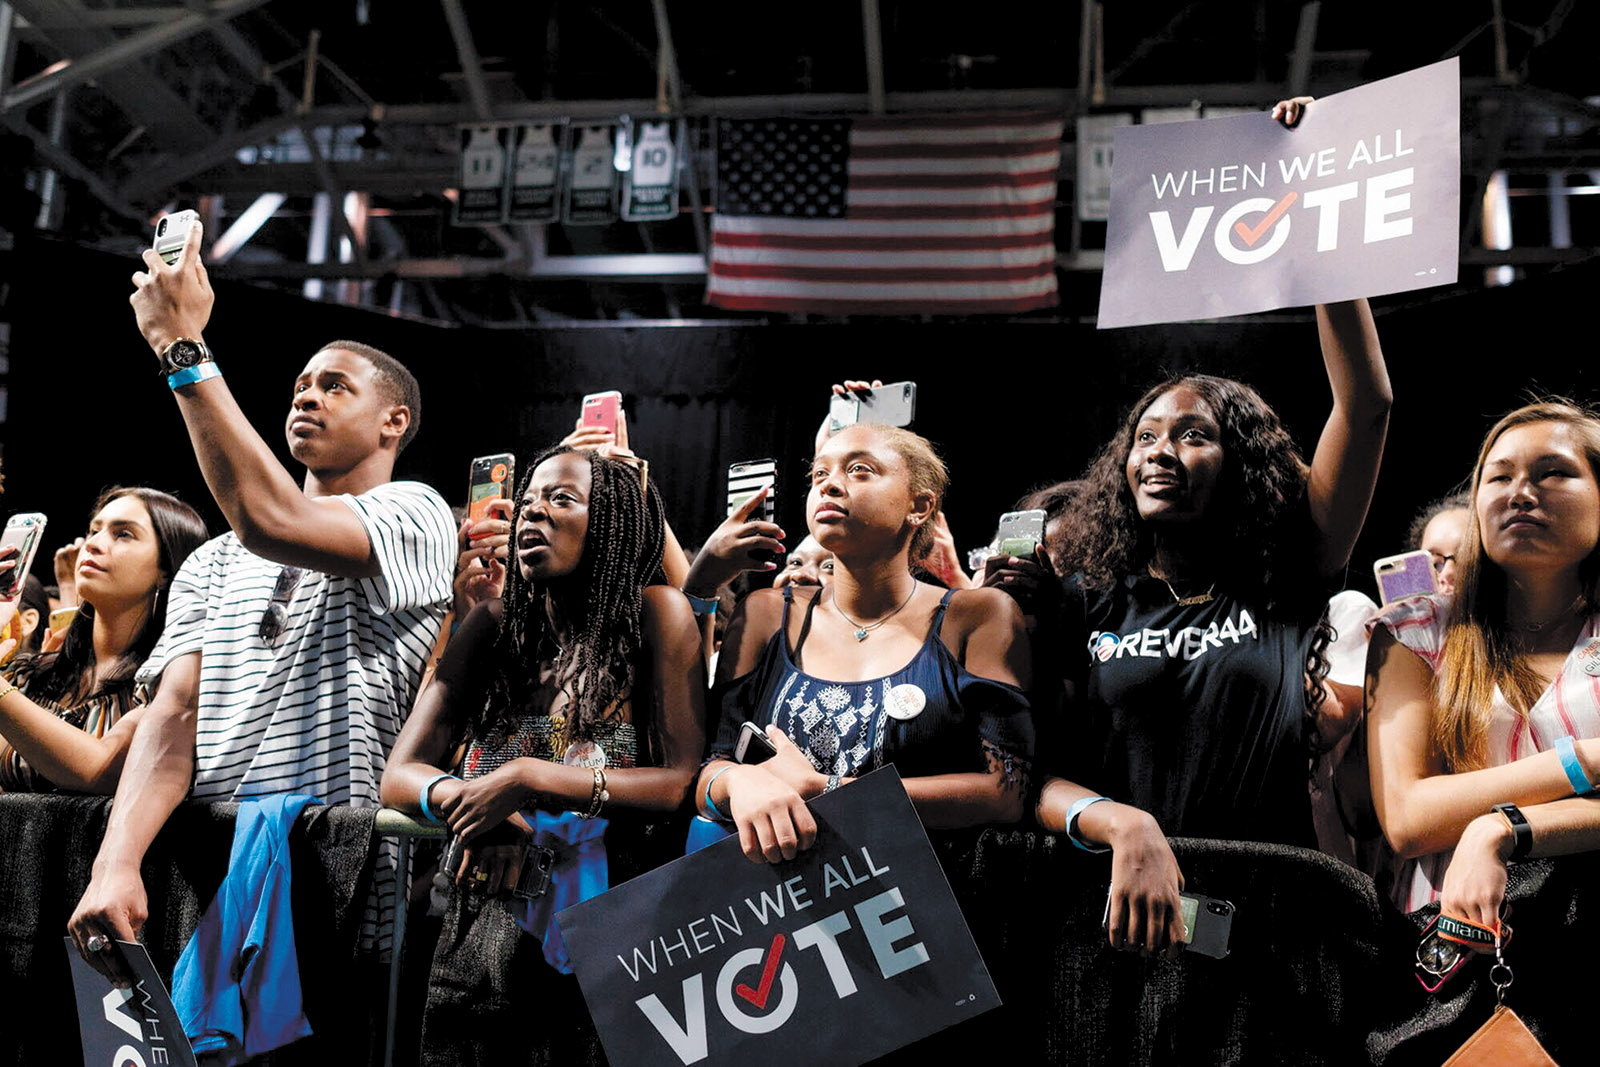 The crowd at a get-out-the-vote rally during a speech by Michelle Obama, Miami, Florida, September 2018